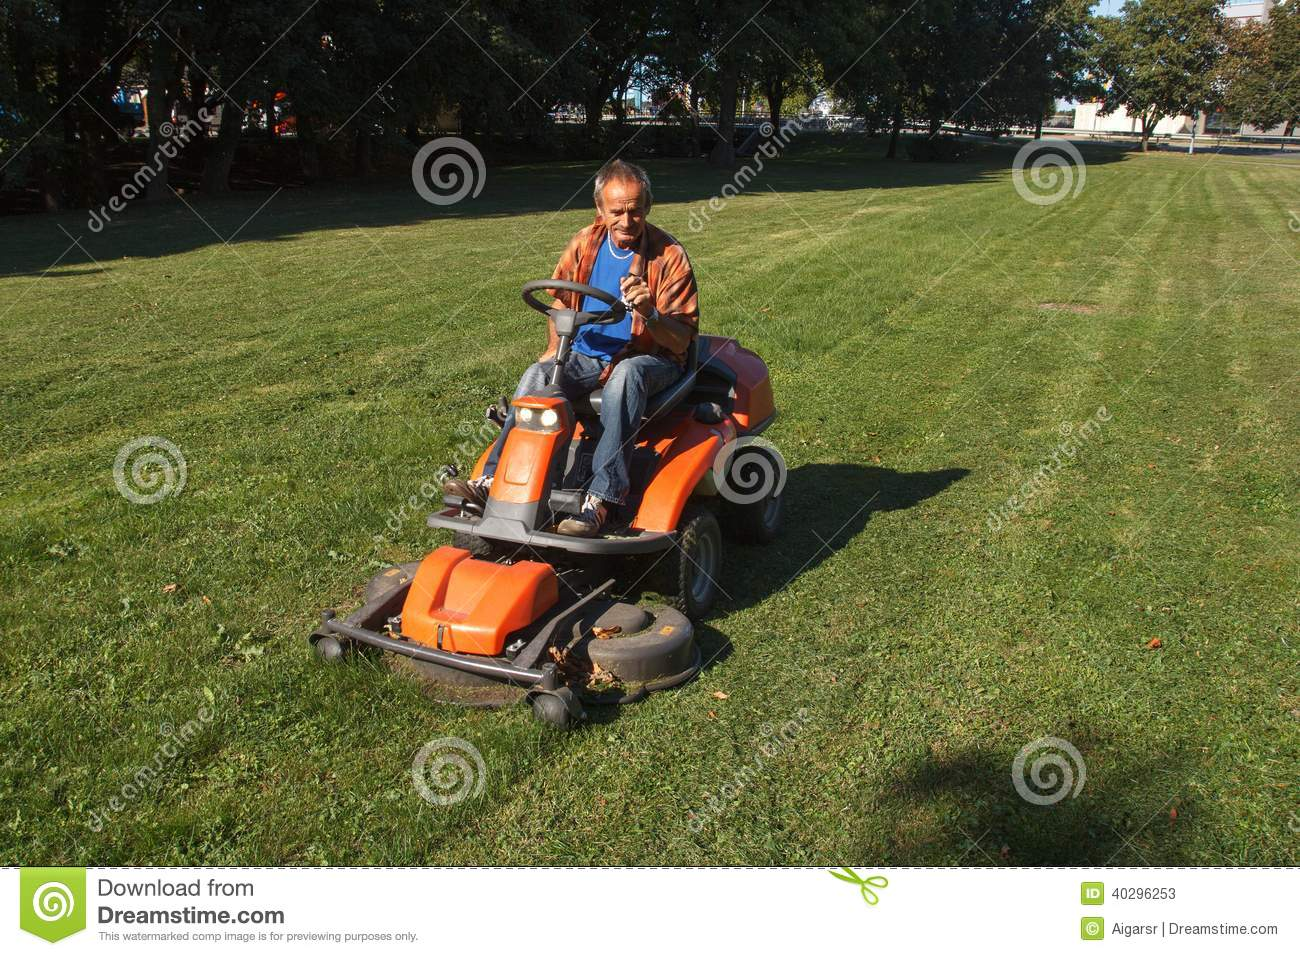 Ride on lawn mower cutting grass stock photo image for Lawn mower cutting grass